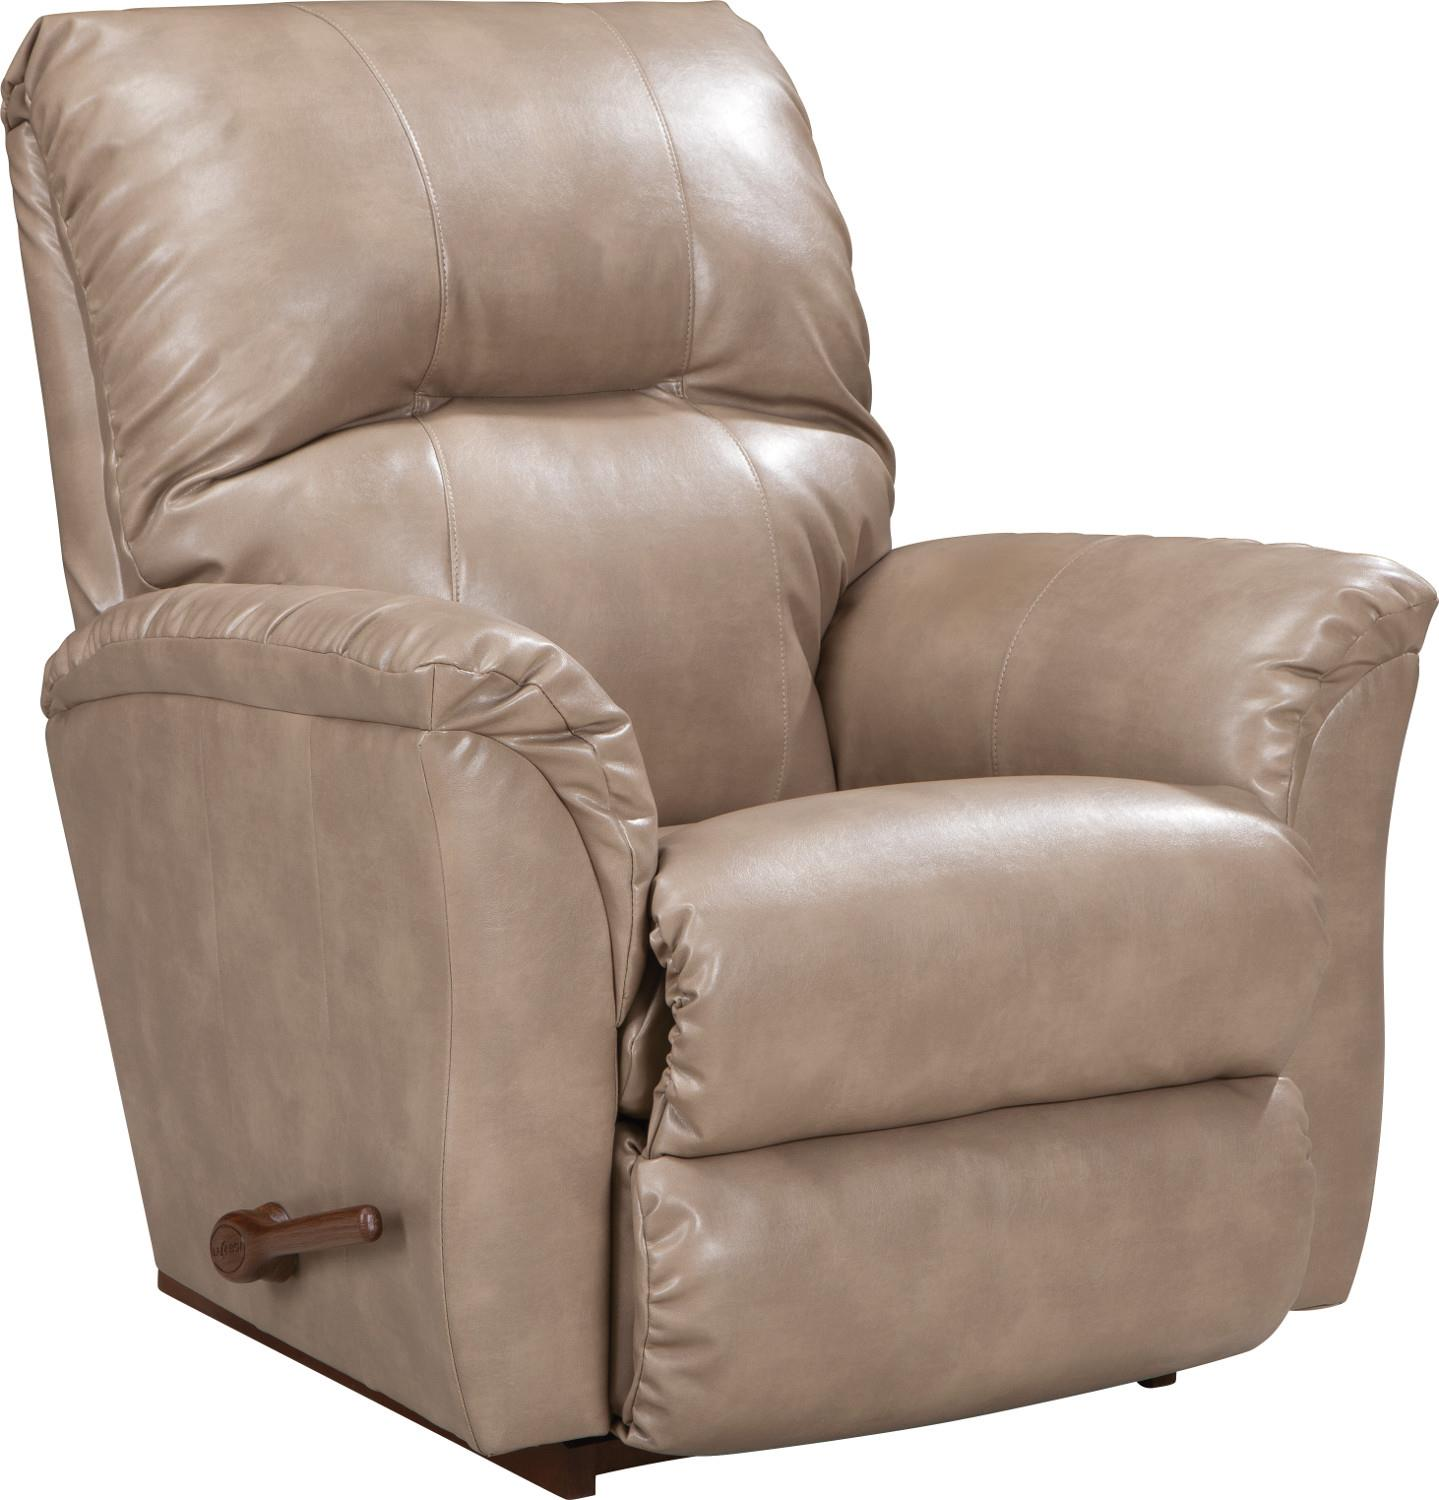 Gabe Reclina Glider Swivel Recliner By La Z Boy Wolf